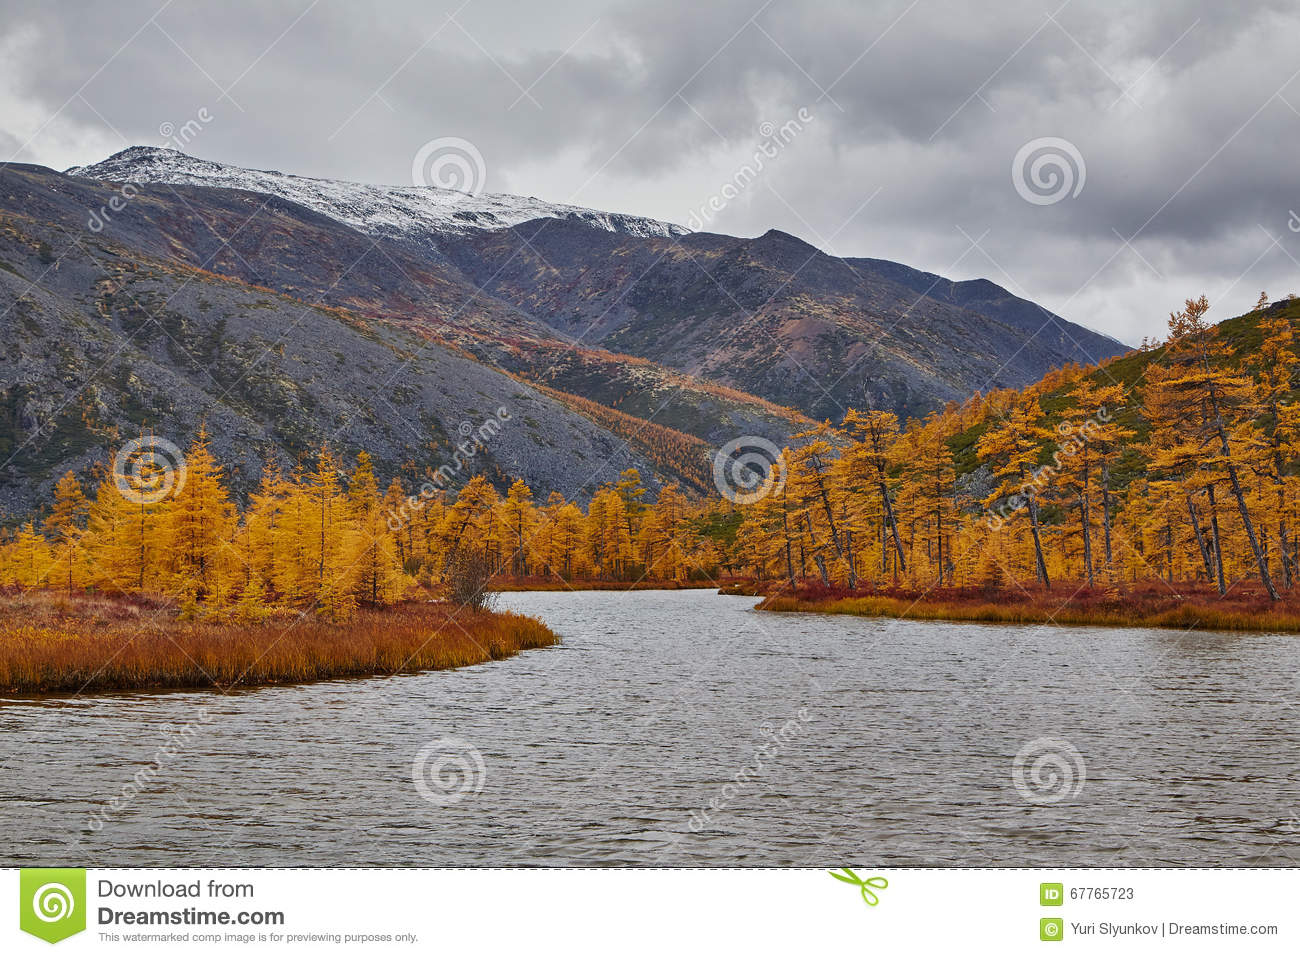 Autumn. A mouth of the stream running into lake of Jack London. Mountains in snow